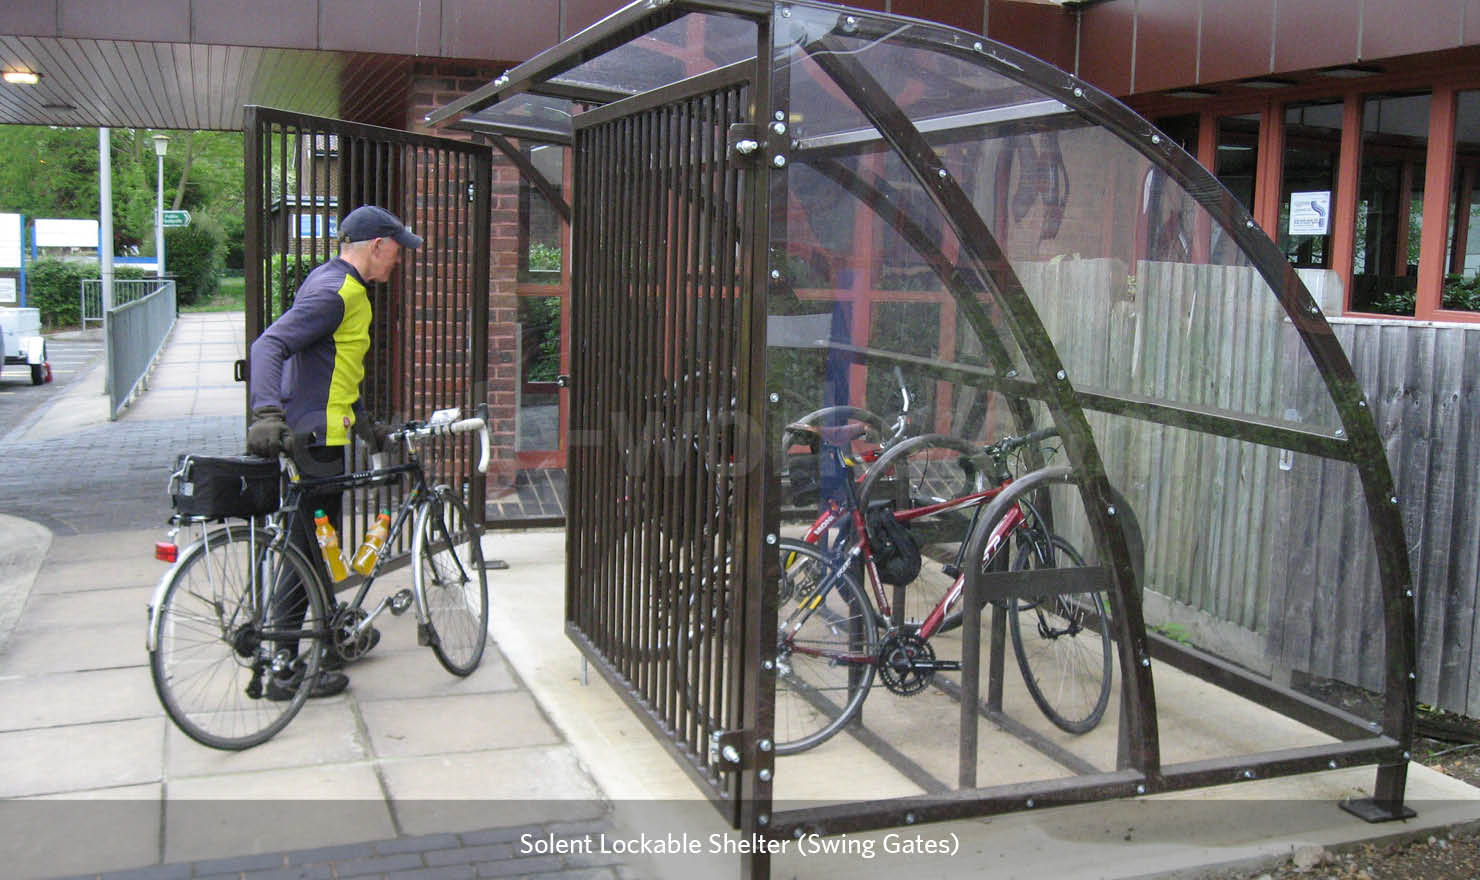 Cycle Shelter with Lock